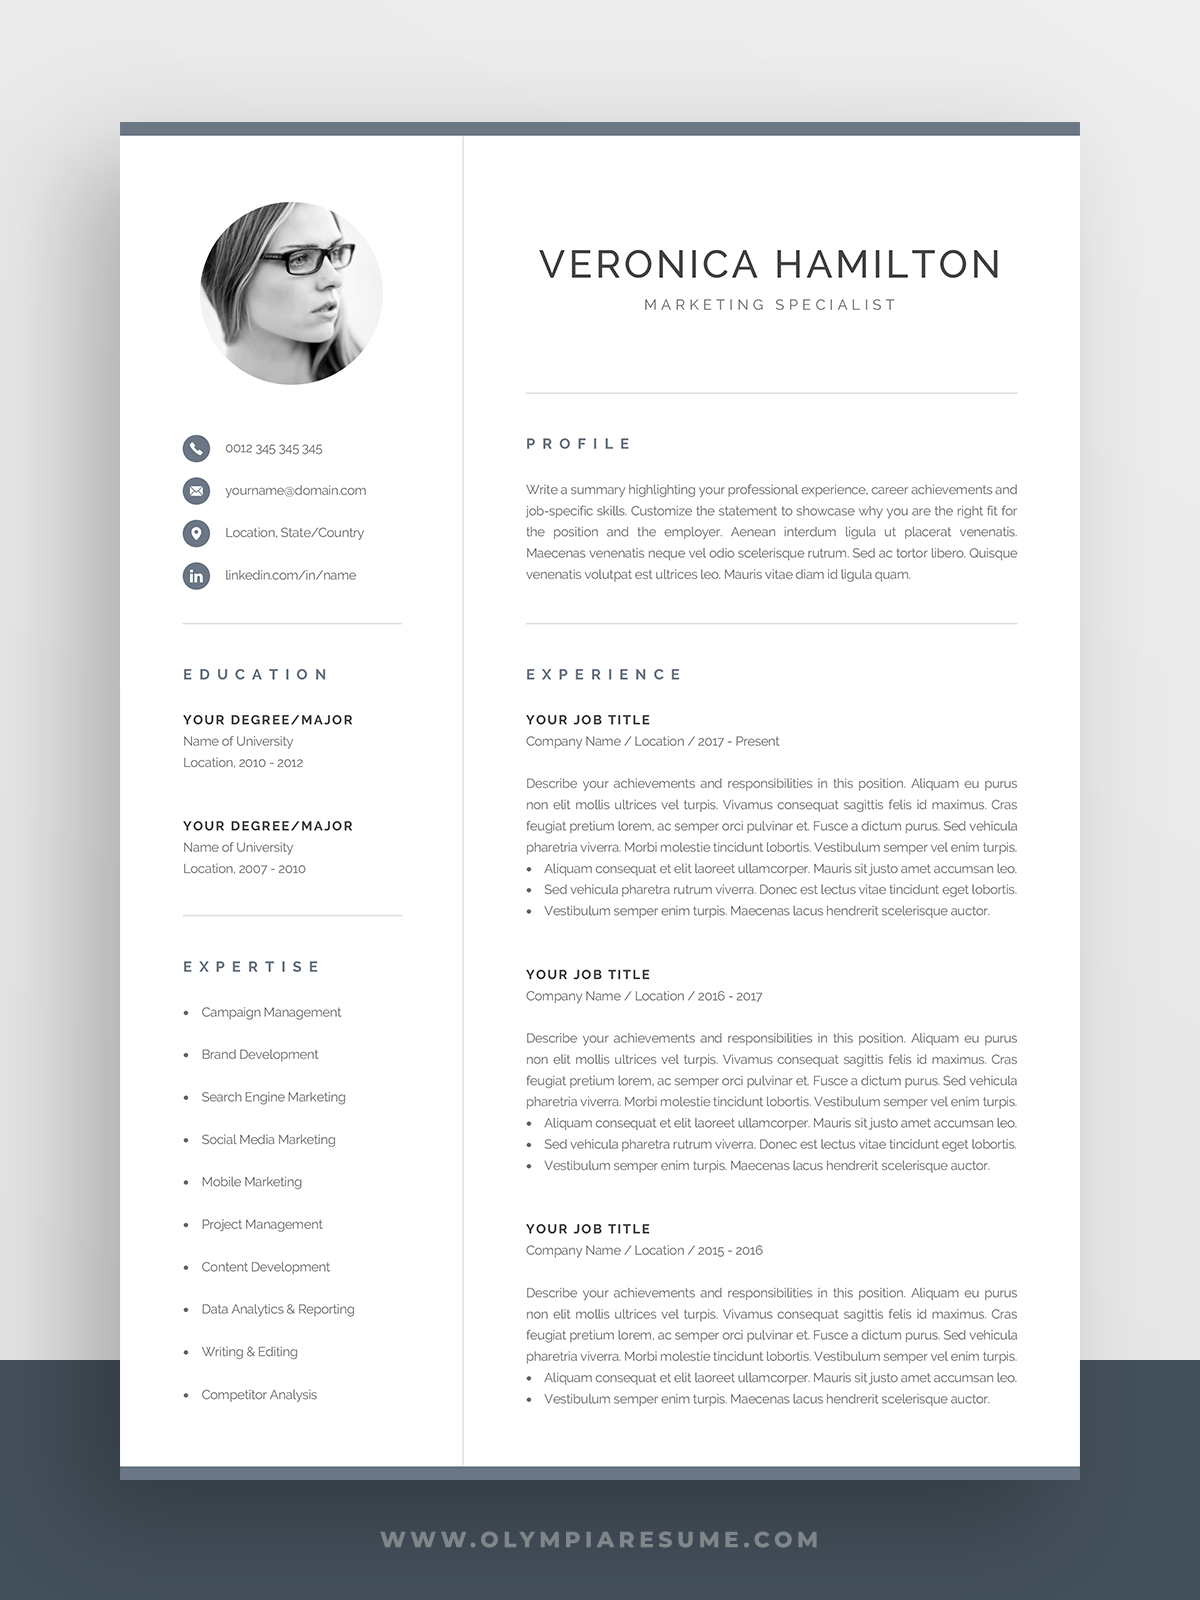 Professional Cv Template With Photo Modern Photo Resume Etsy Cv Template One Page Resume Template Cv Template Professional